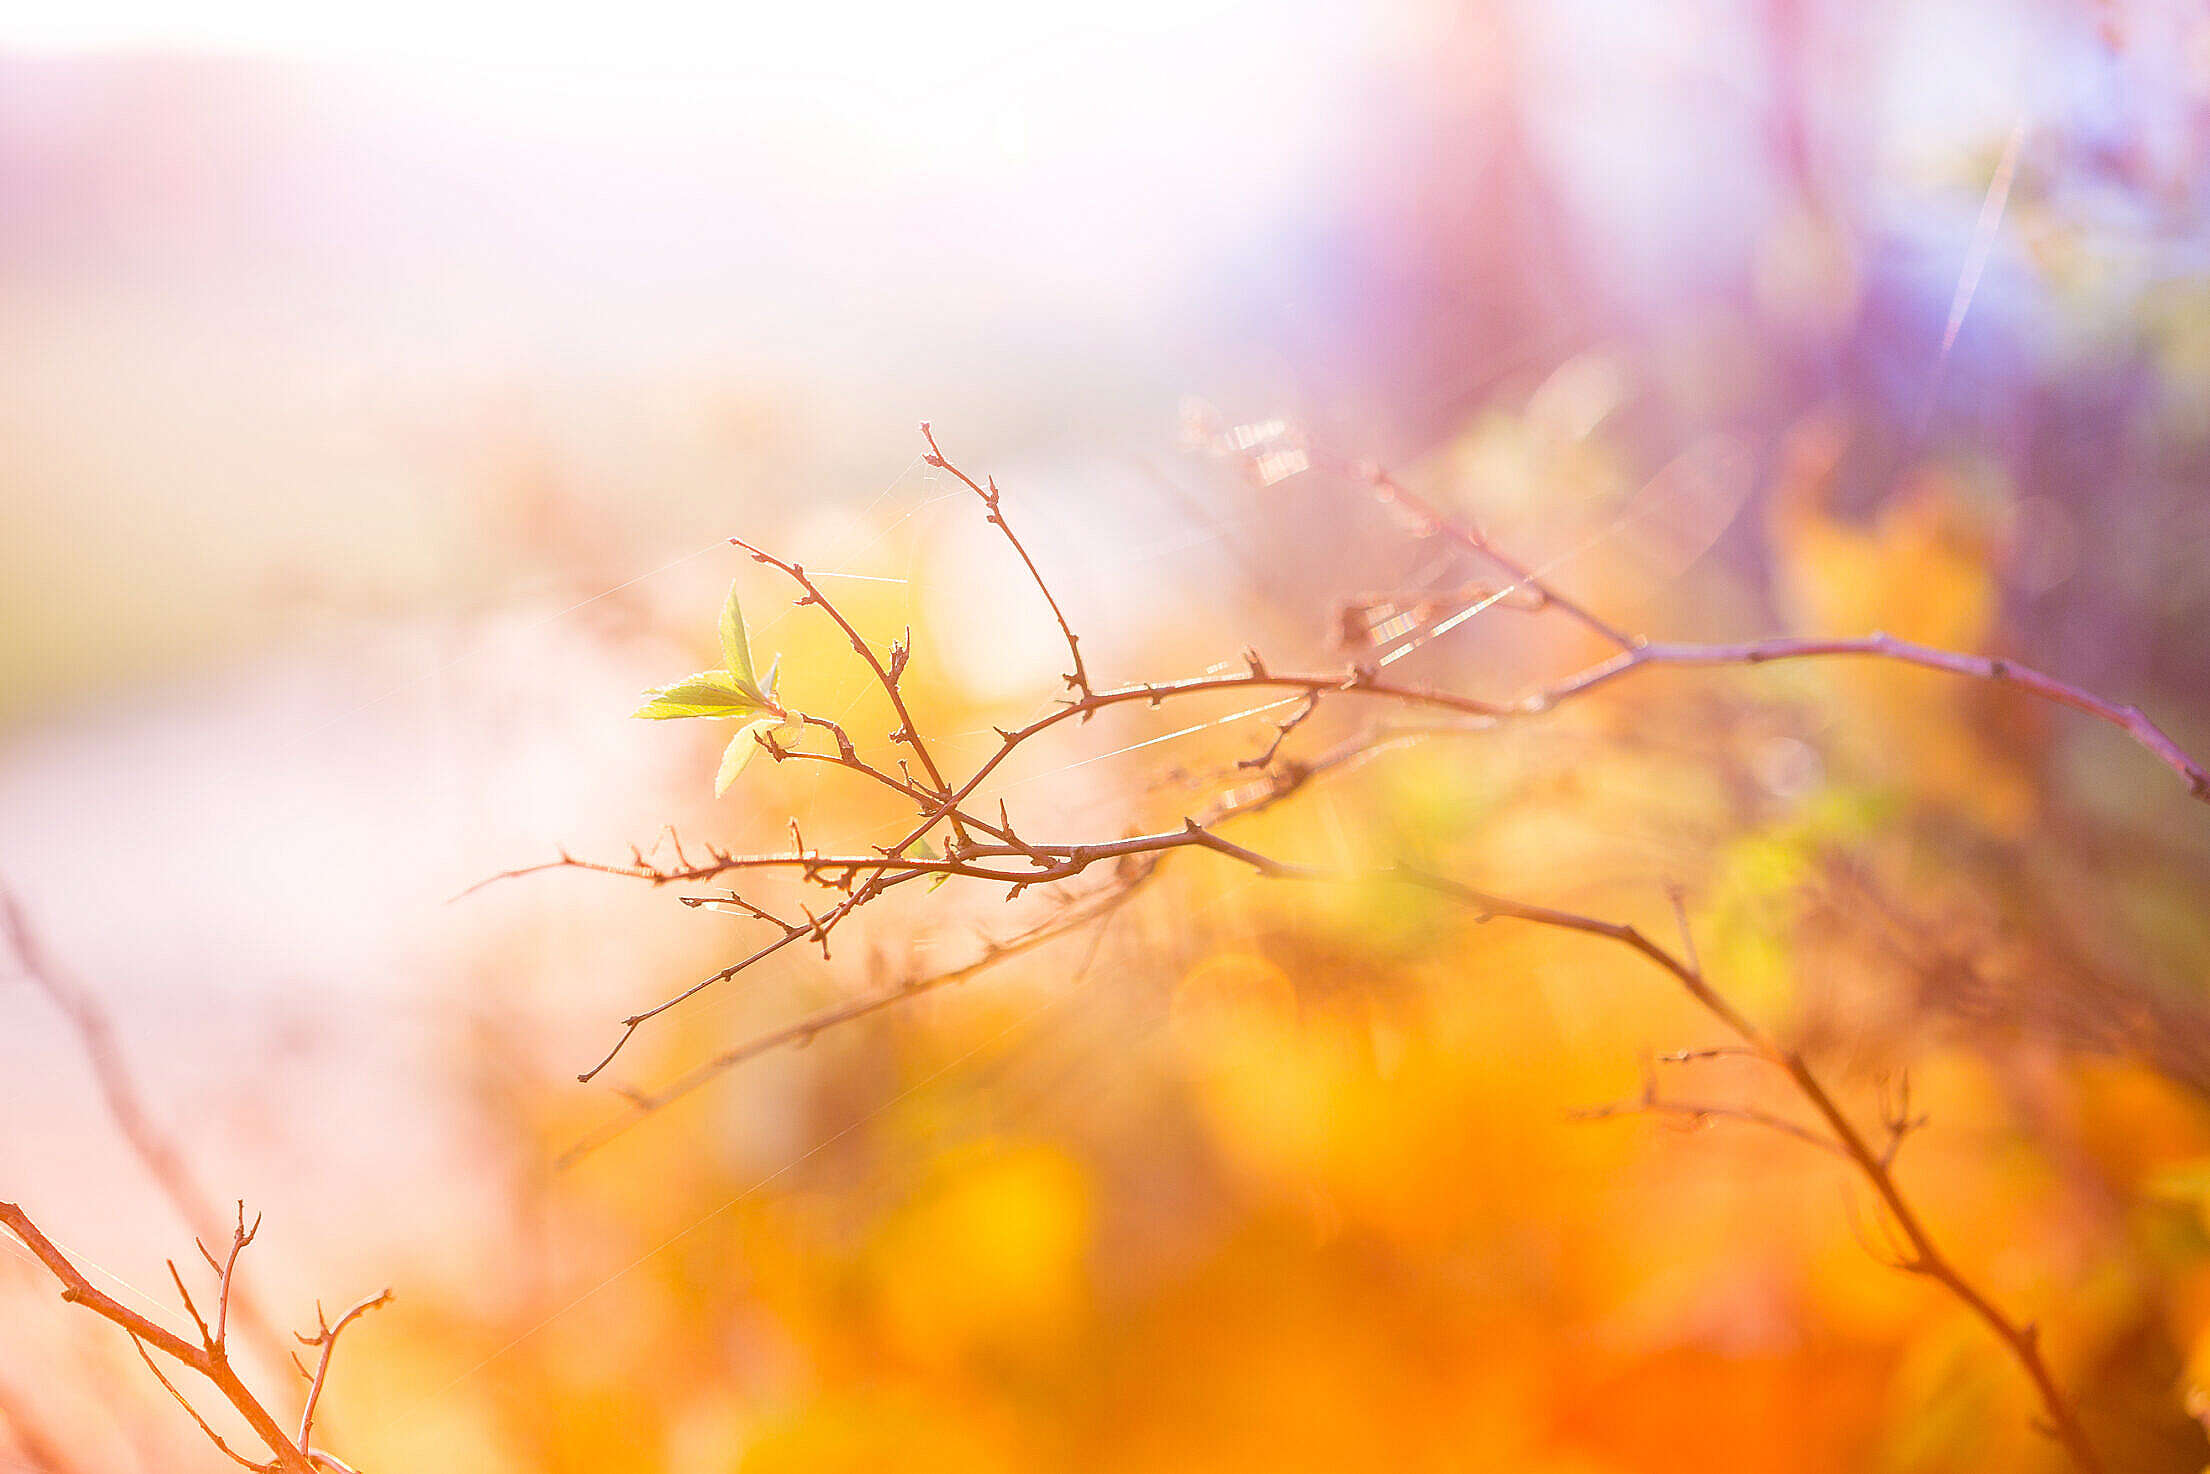 Abstract Colors of Autumn Free Stock Photo